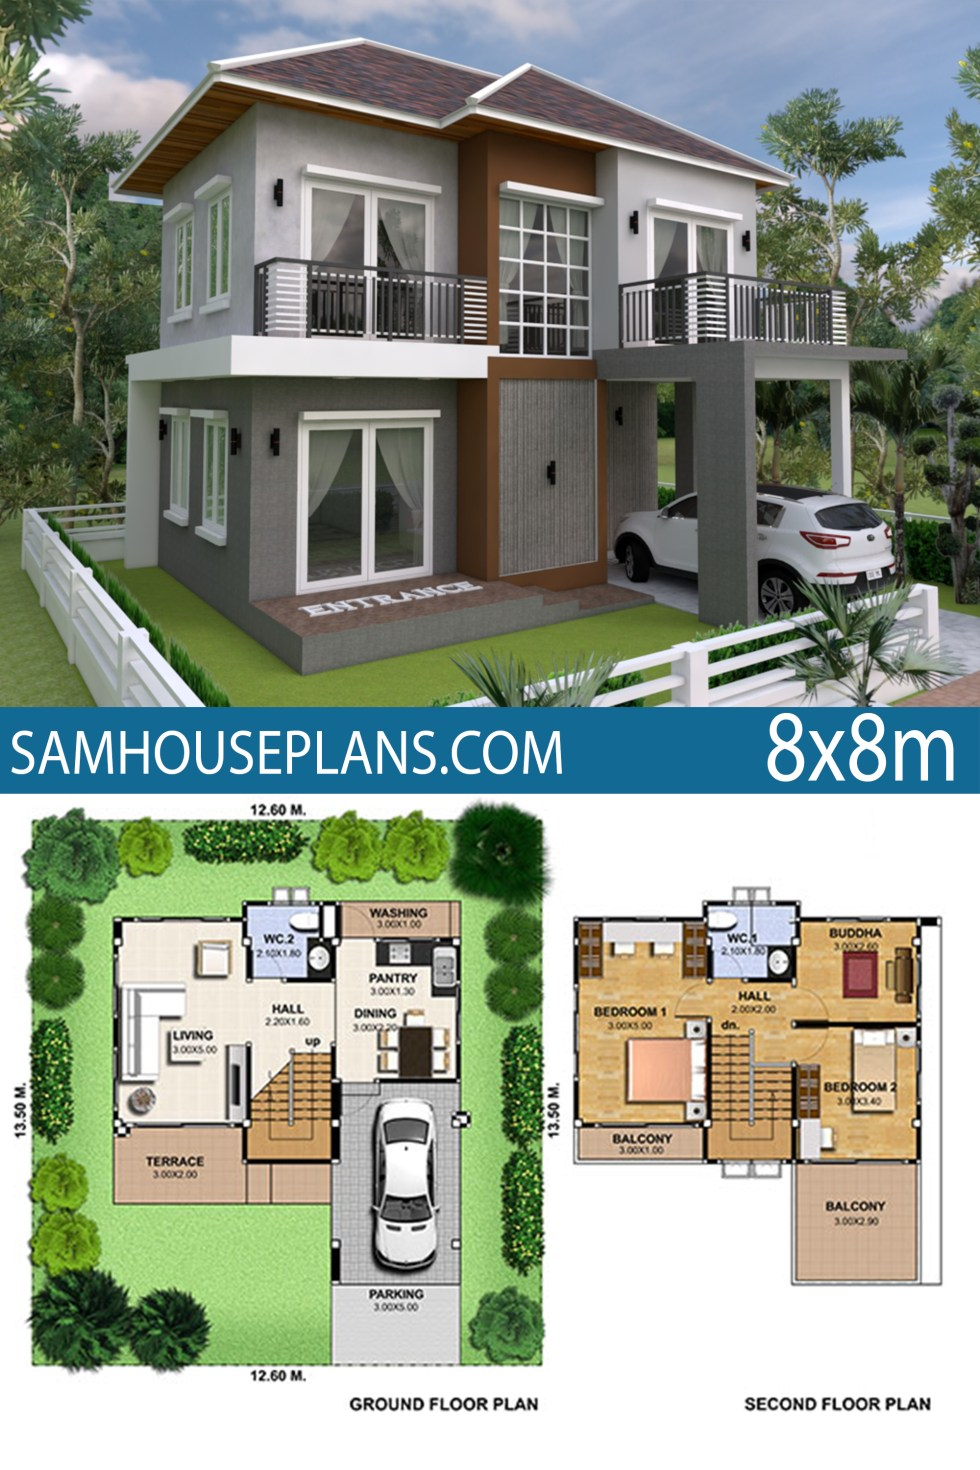 House Plan 8x8m With 3 Bedrooms Samhouseplans